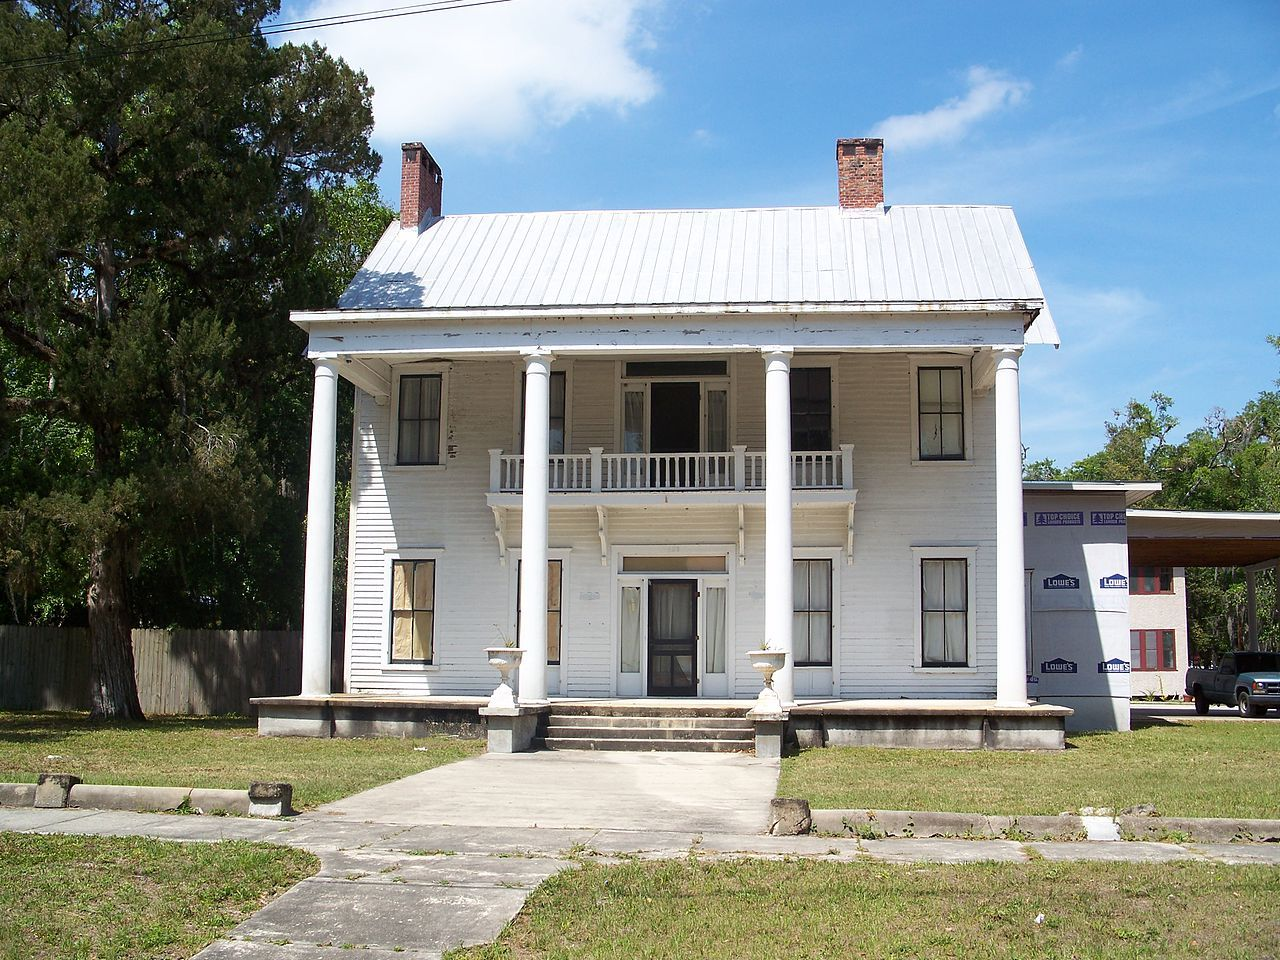 Palatka north historic district in putnam county florida